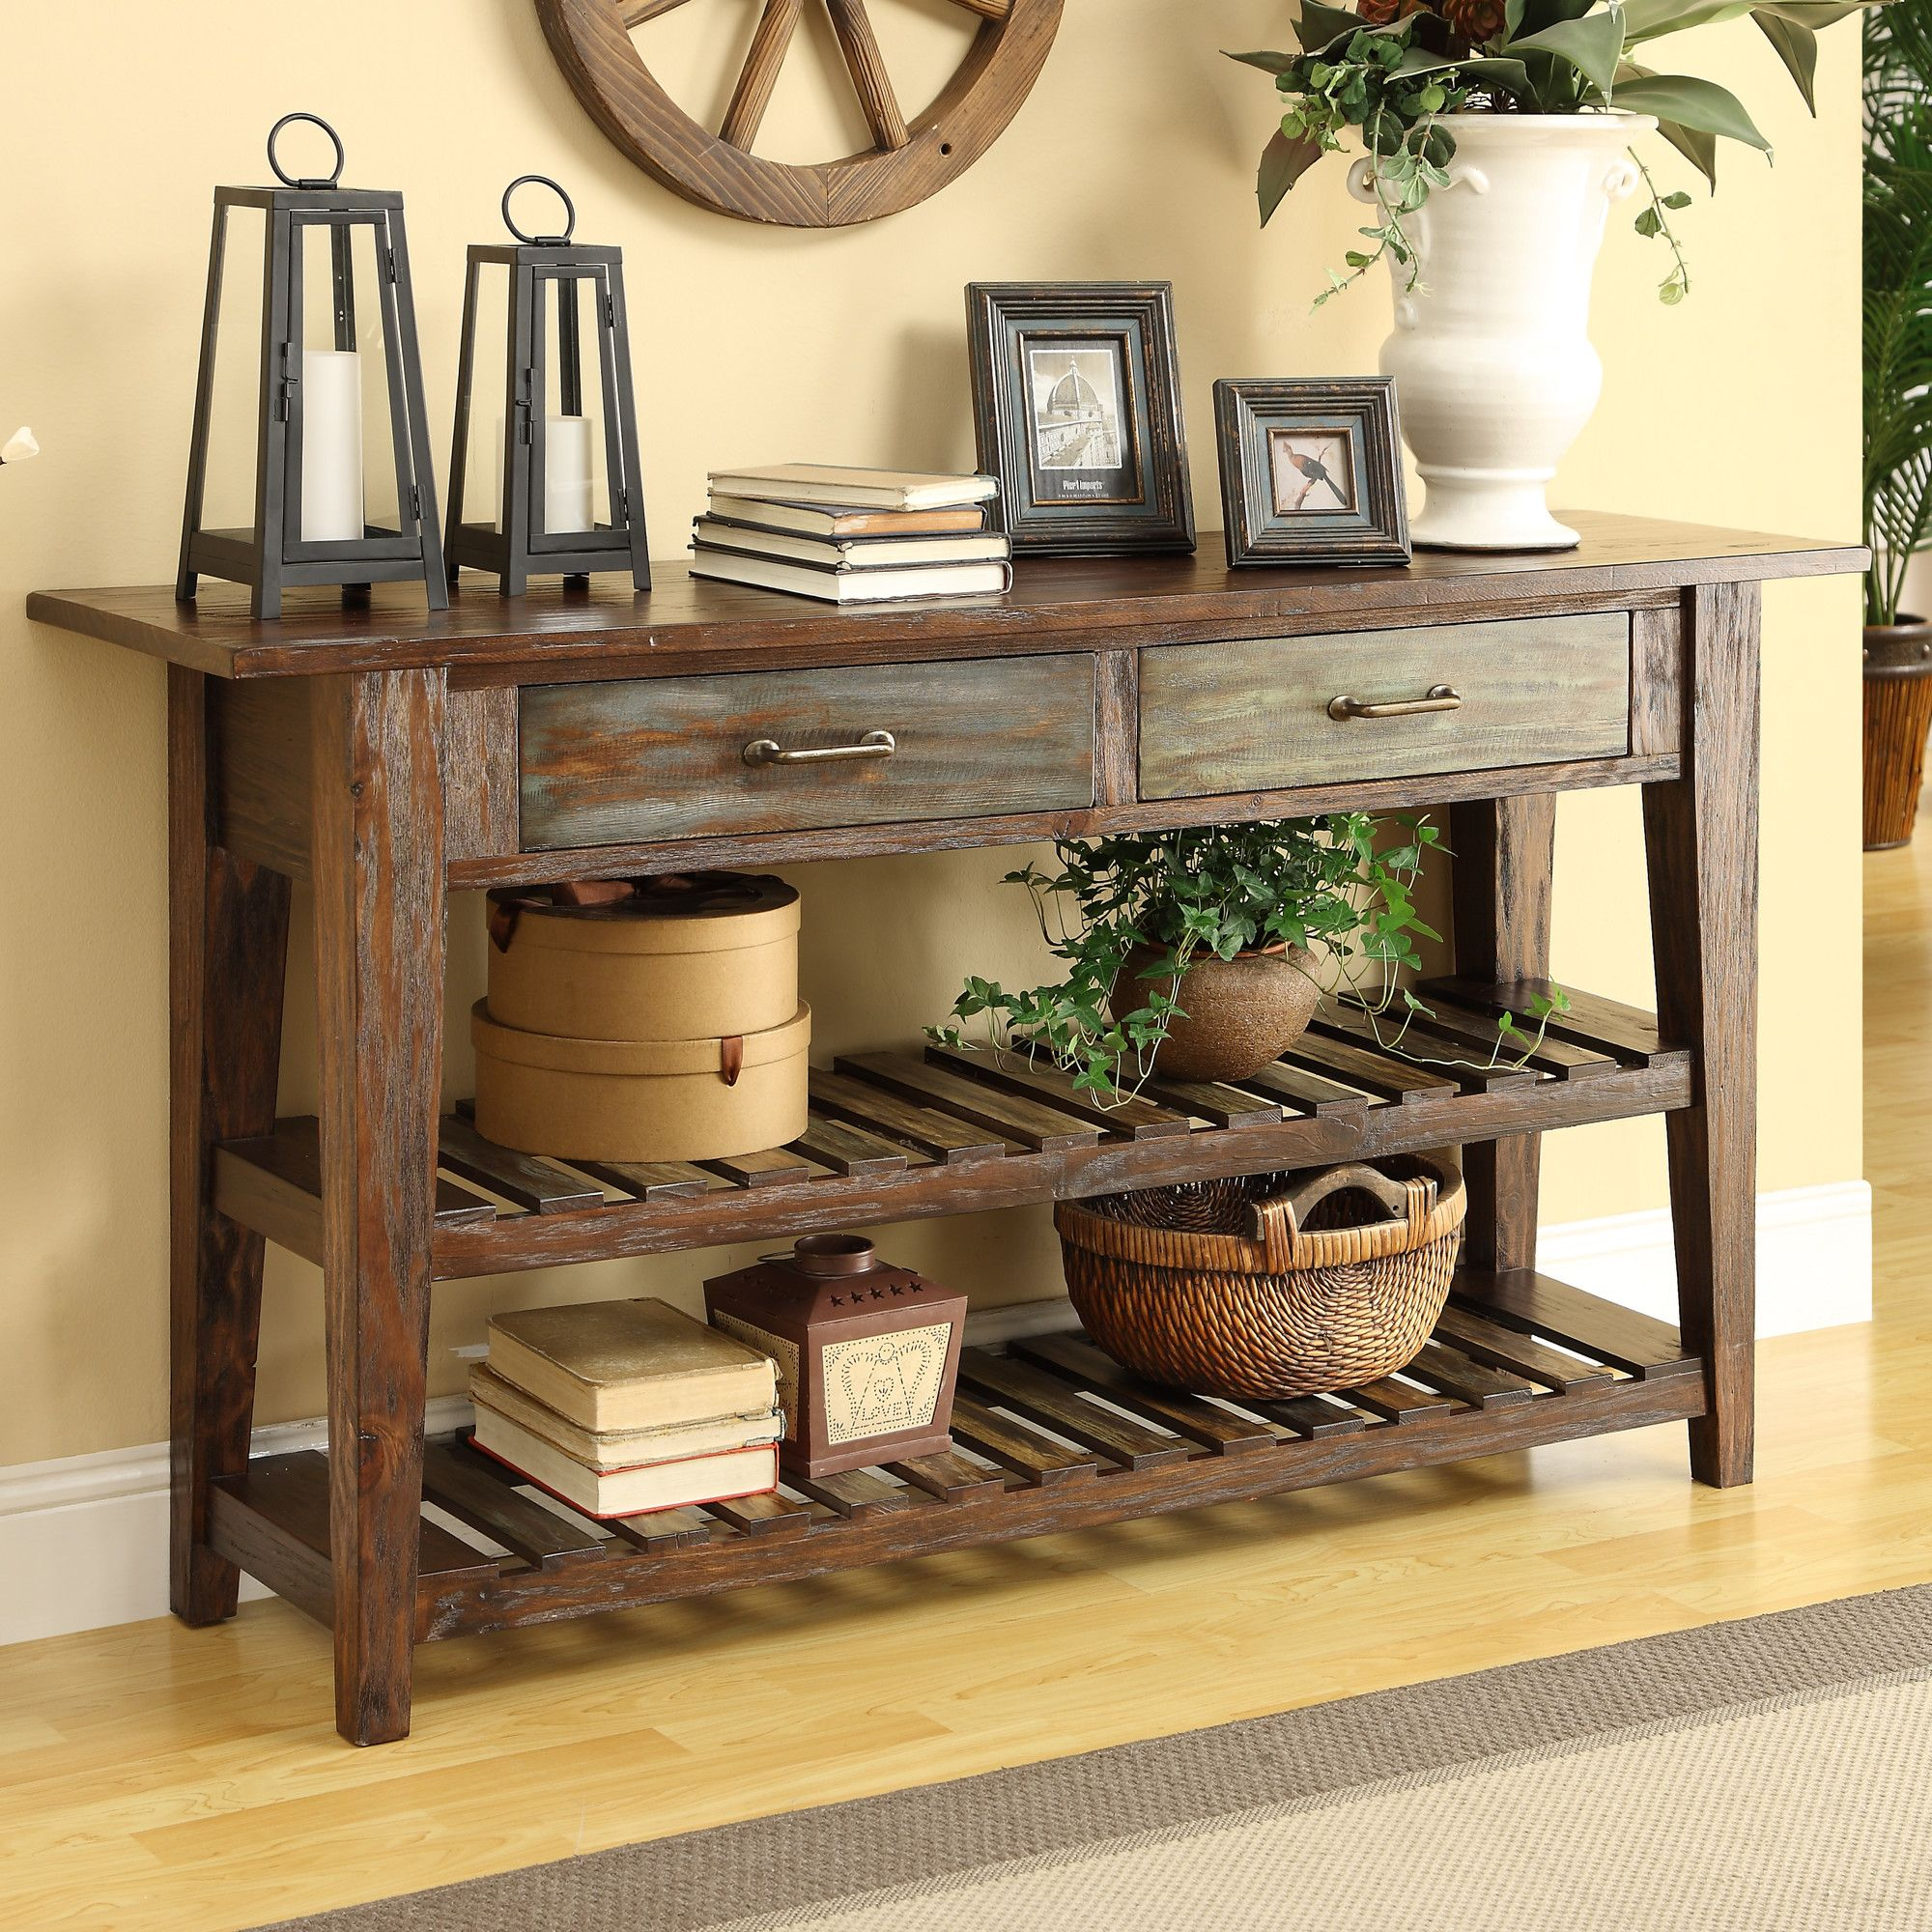 Coast to coast imports courtland console table in brown for Consolas decoracion hogar